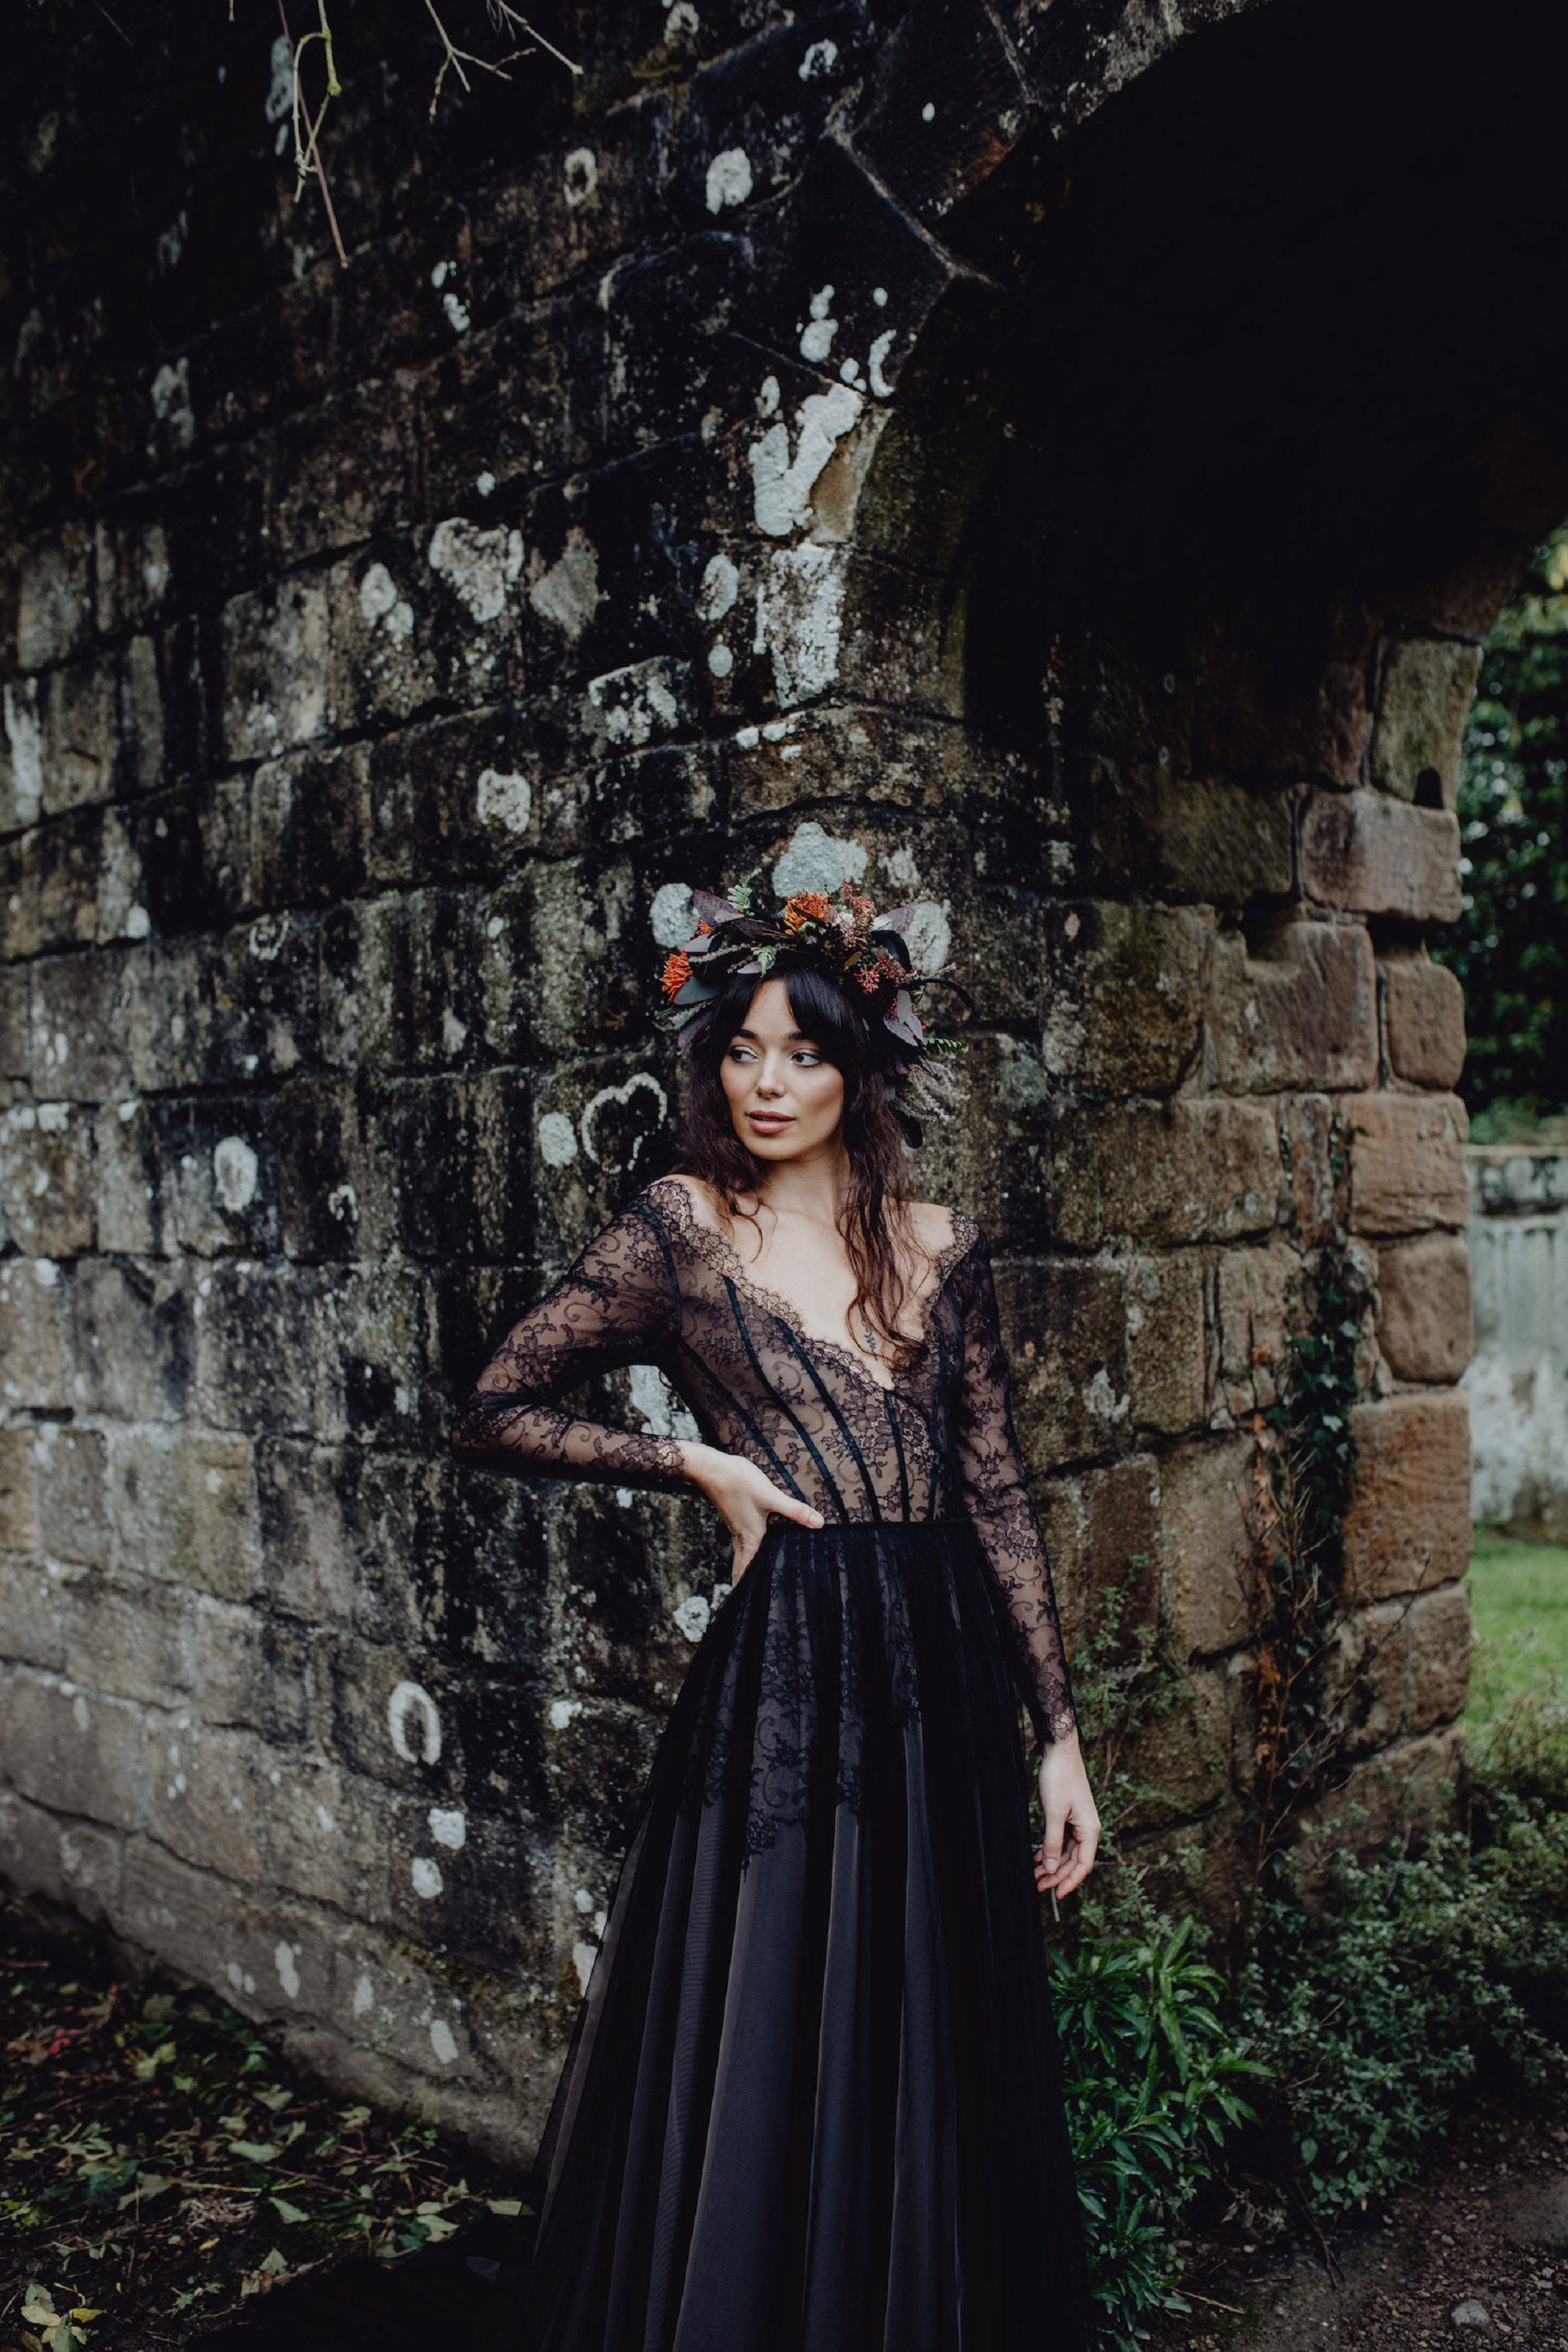 A Dark Romantic Wedding Shoot at Jervaulx Abbey (c) Emilia Kate Photography (31)